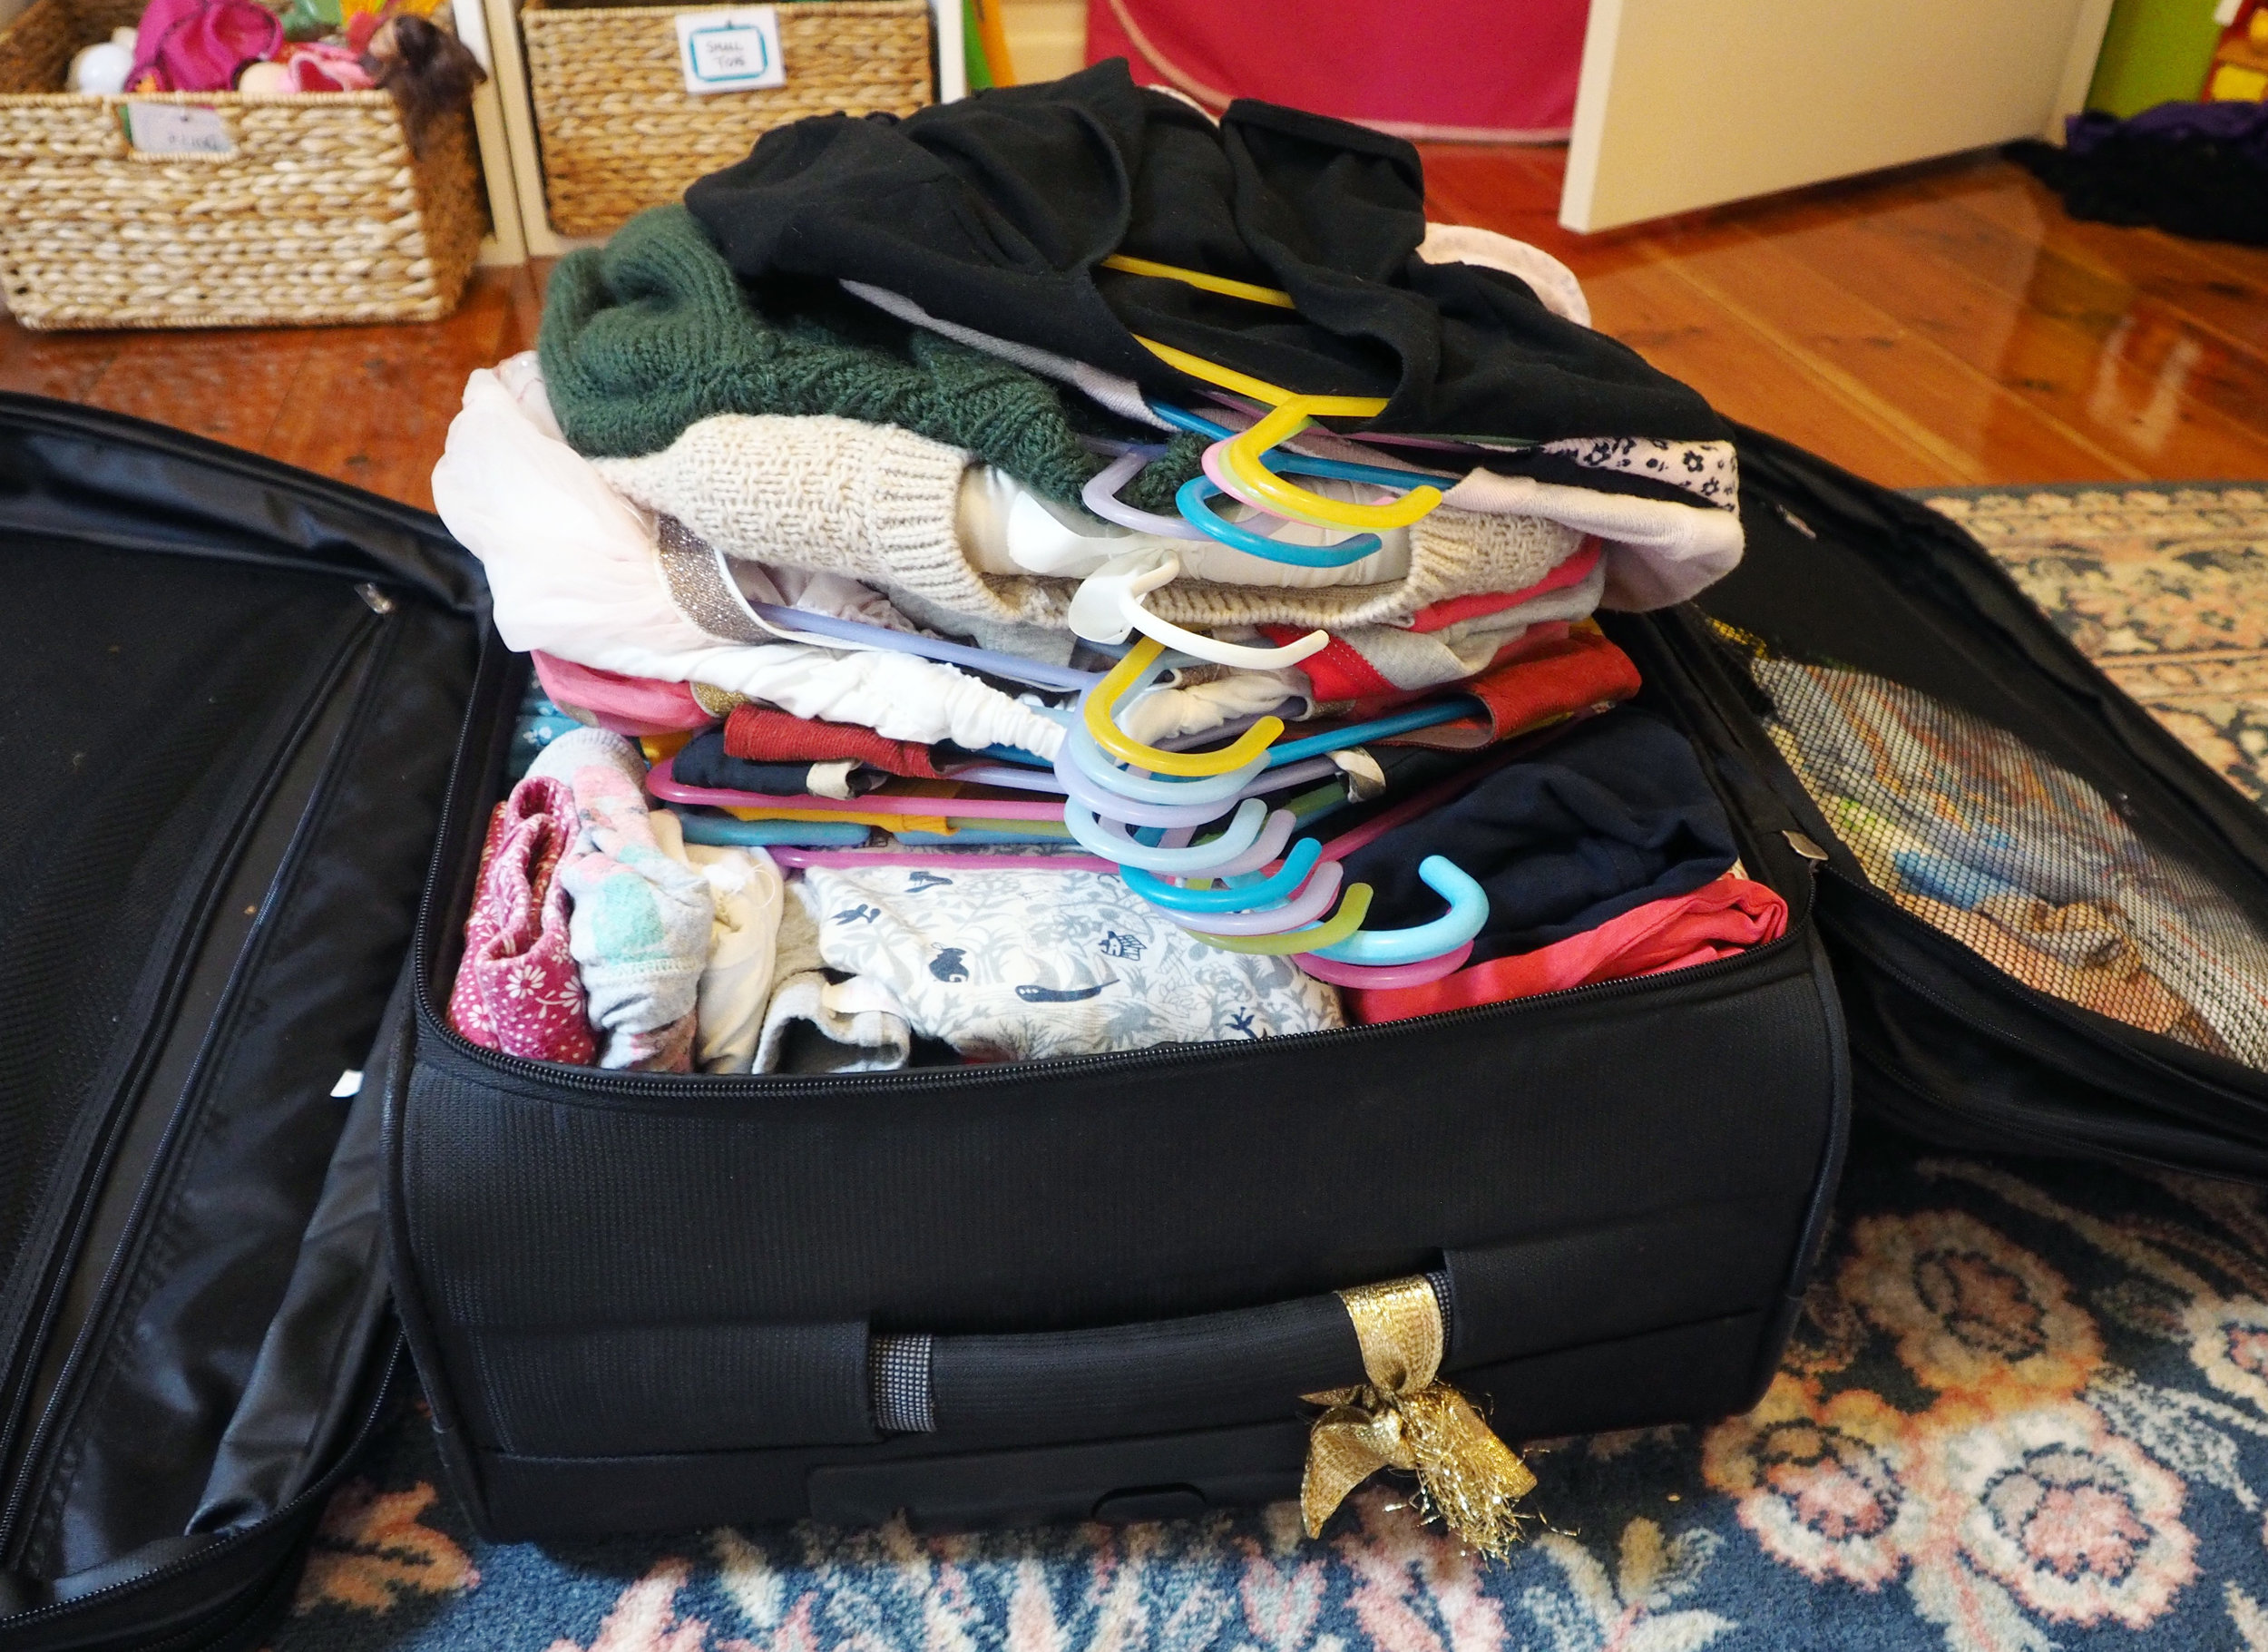 packing and moving tips - The Organised You